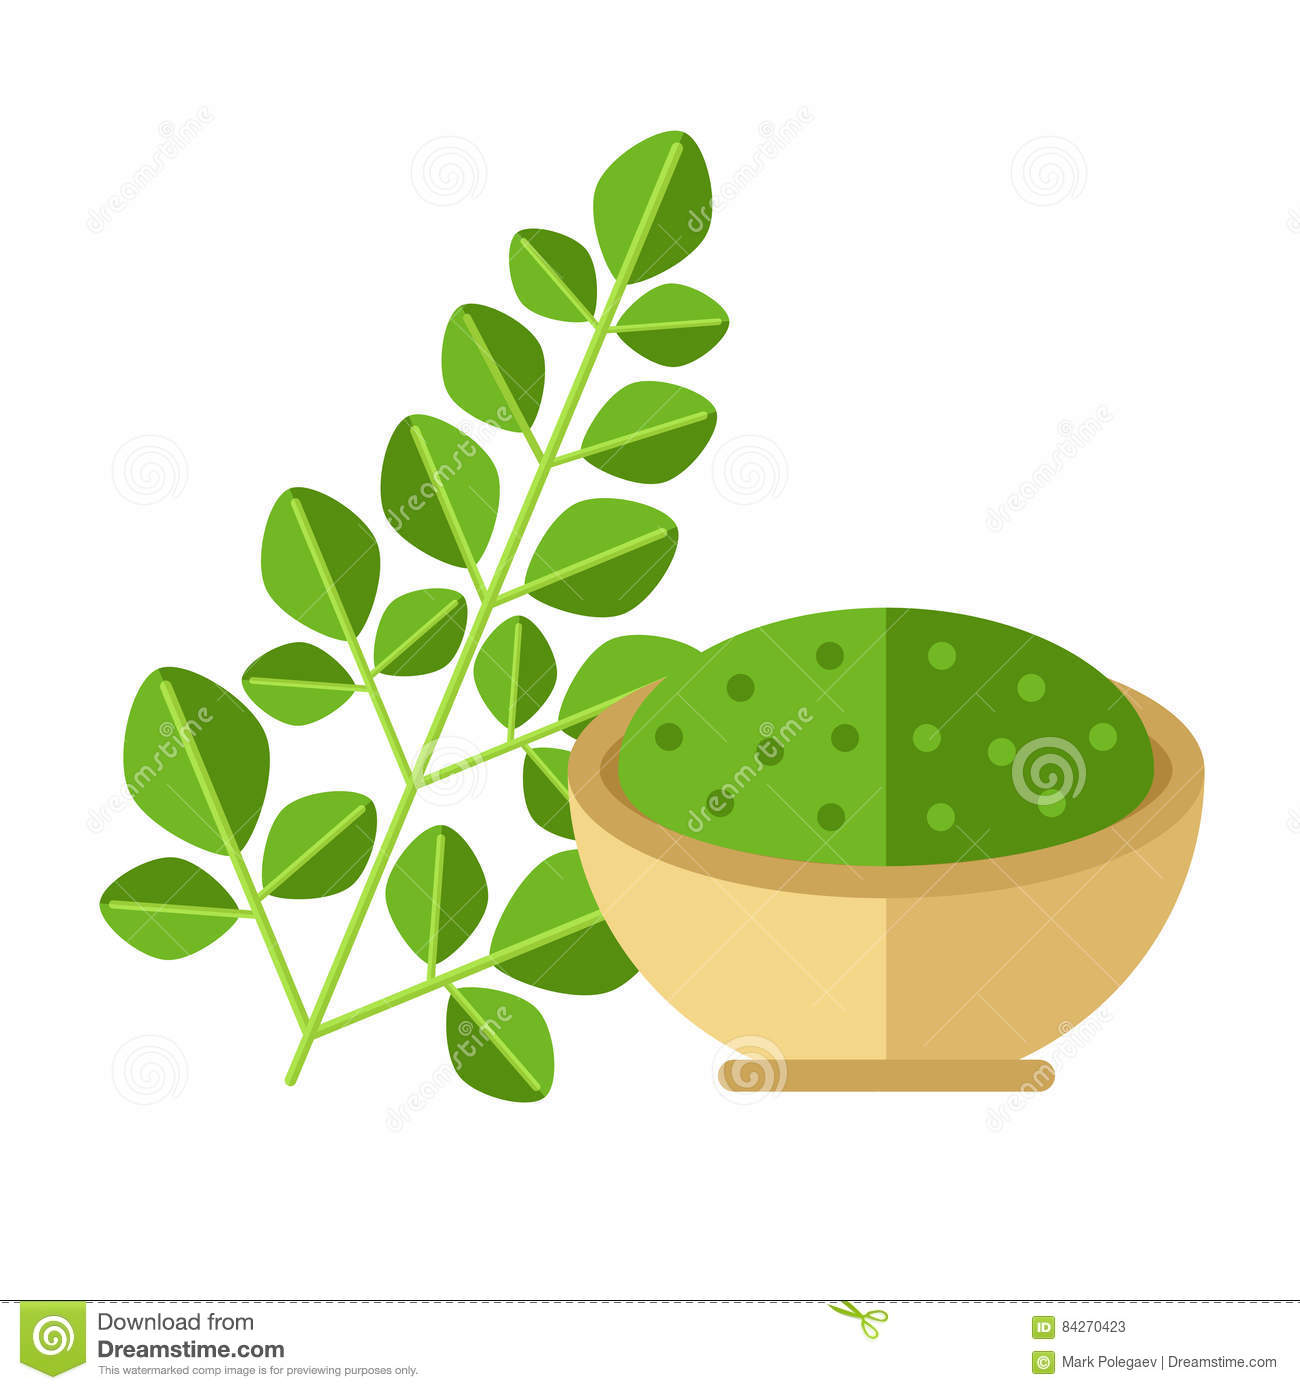 Moringa plant with leaves and seed powder. Vector illustration.